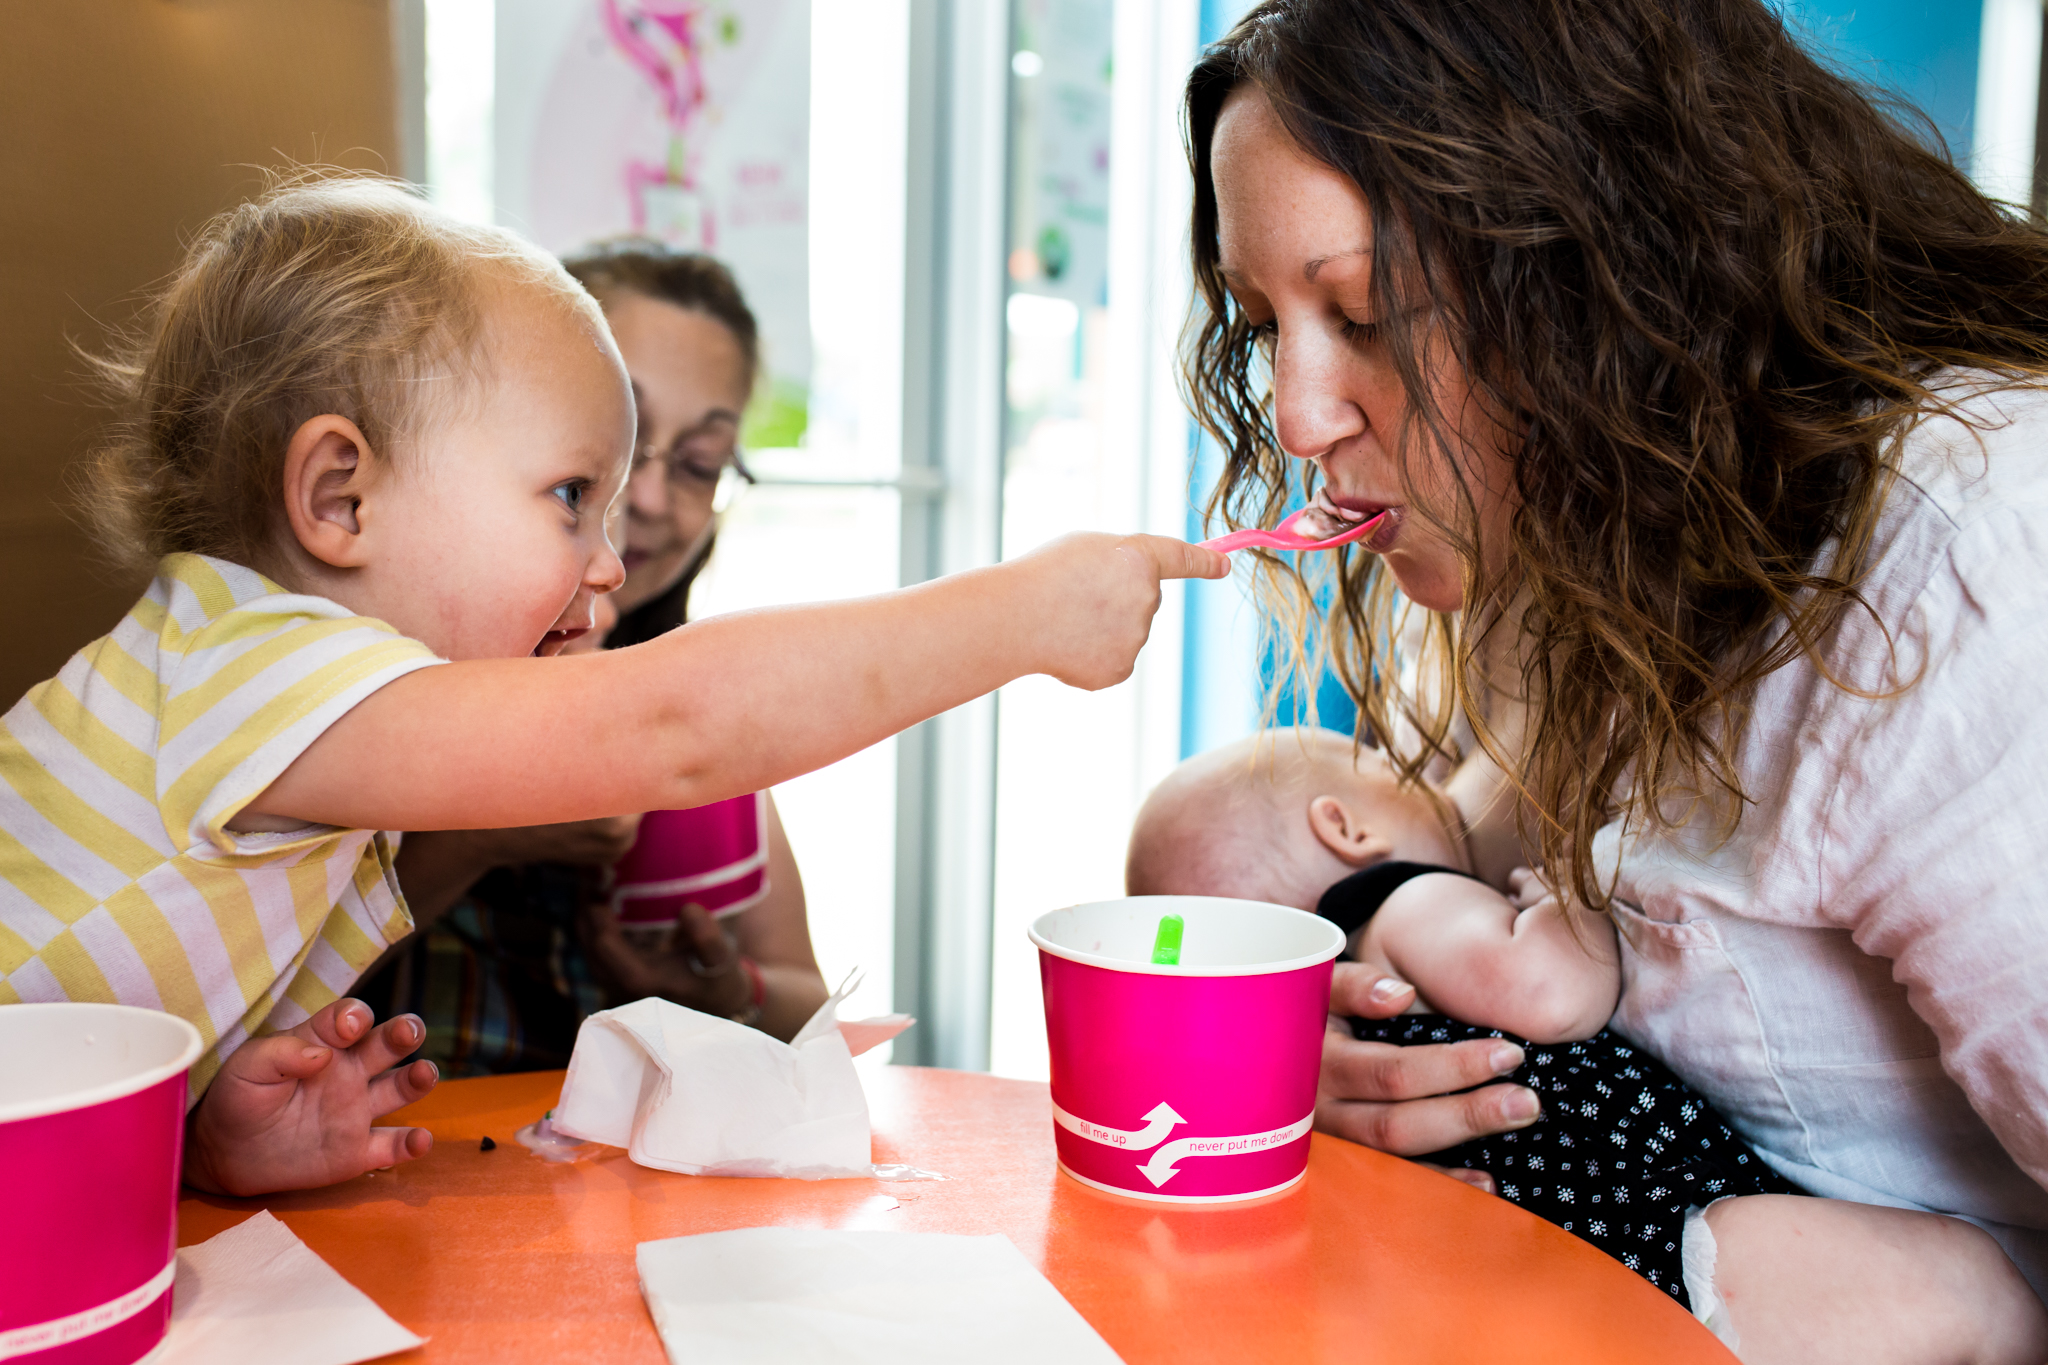 Lawren Rose Photography takes a photo of a family out eating frozen yogurt and the 2 year old daughter spoon feeds her Mom while her Mom is breastfeeding her newborn